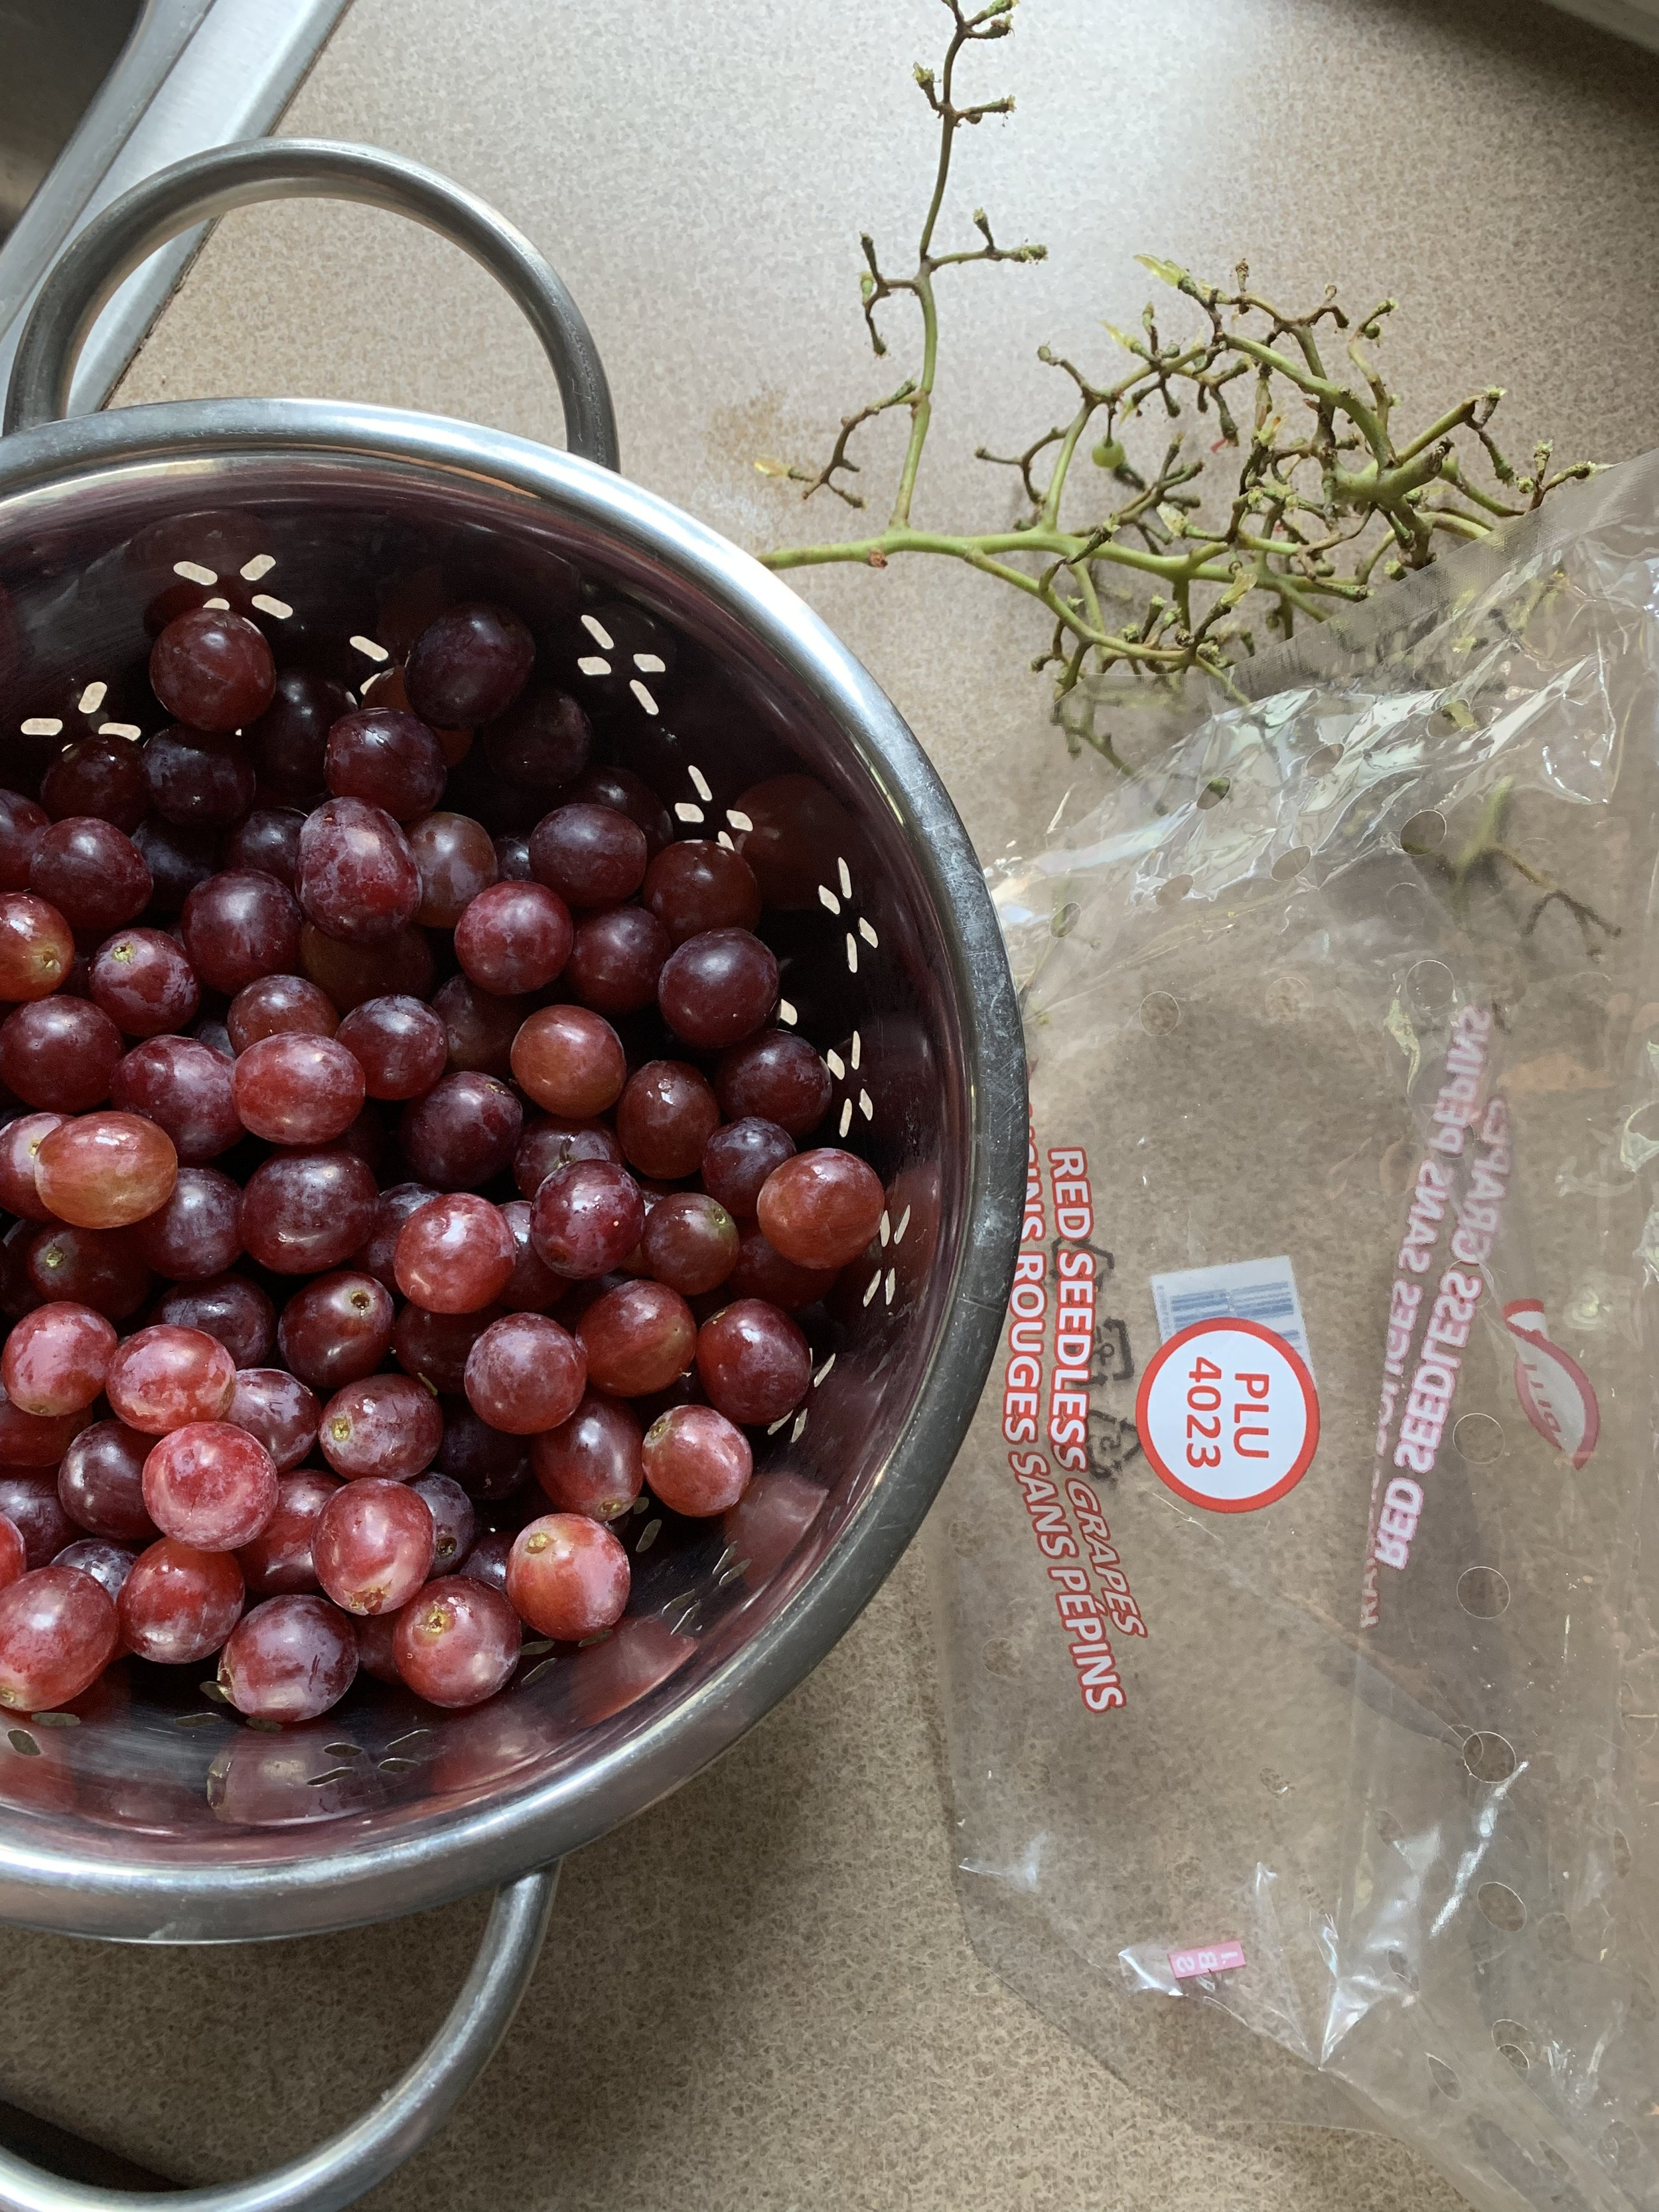 grapes on a plant-based diet